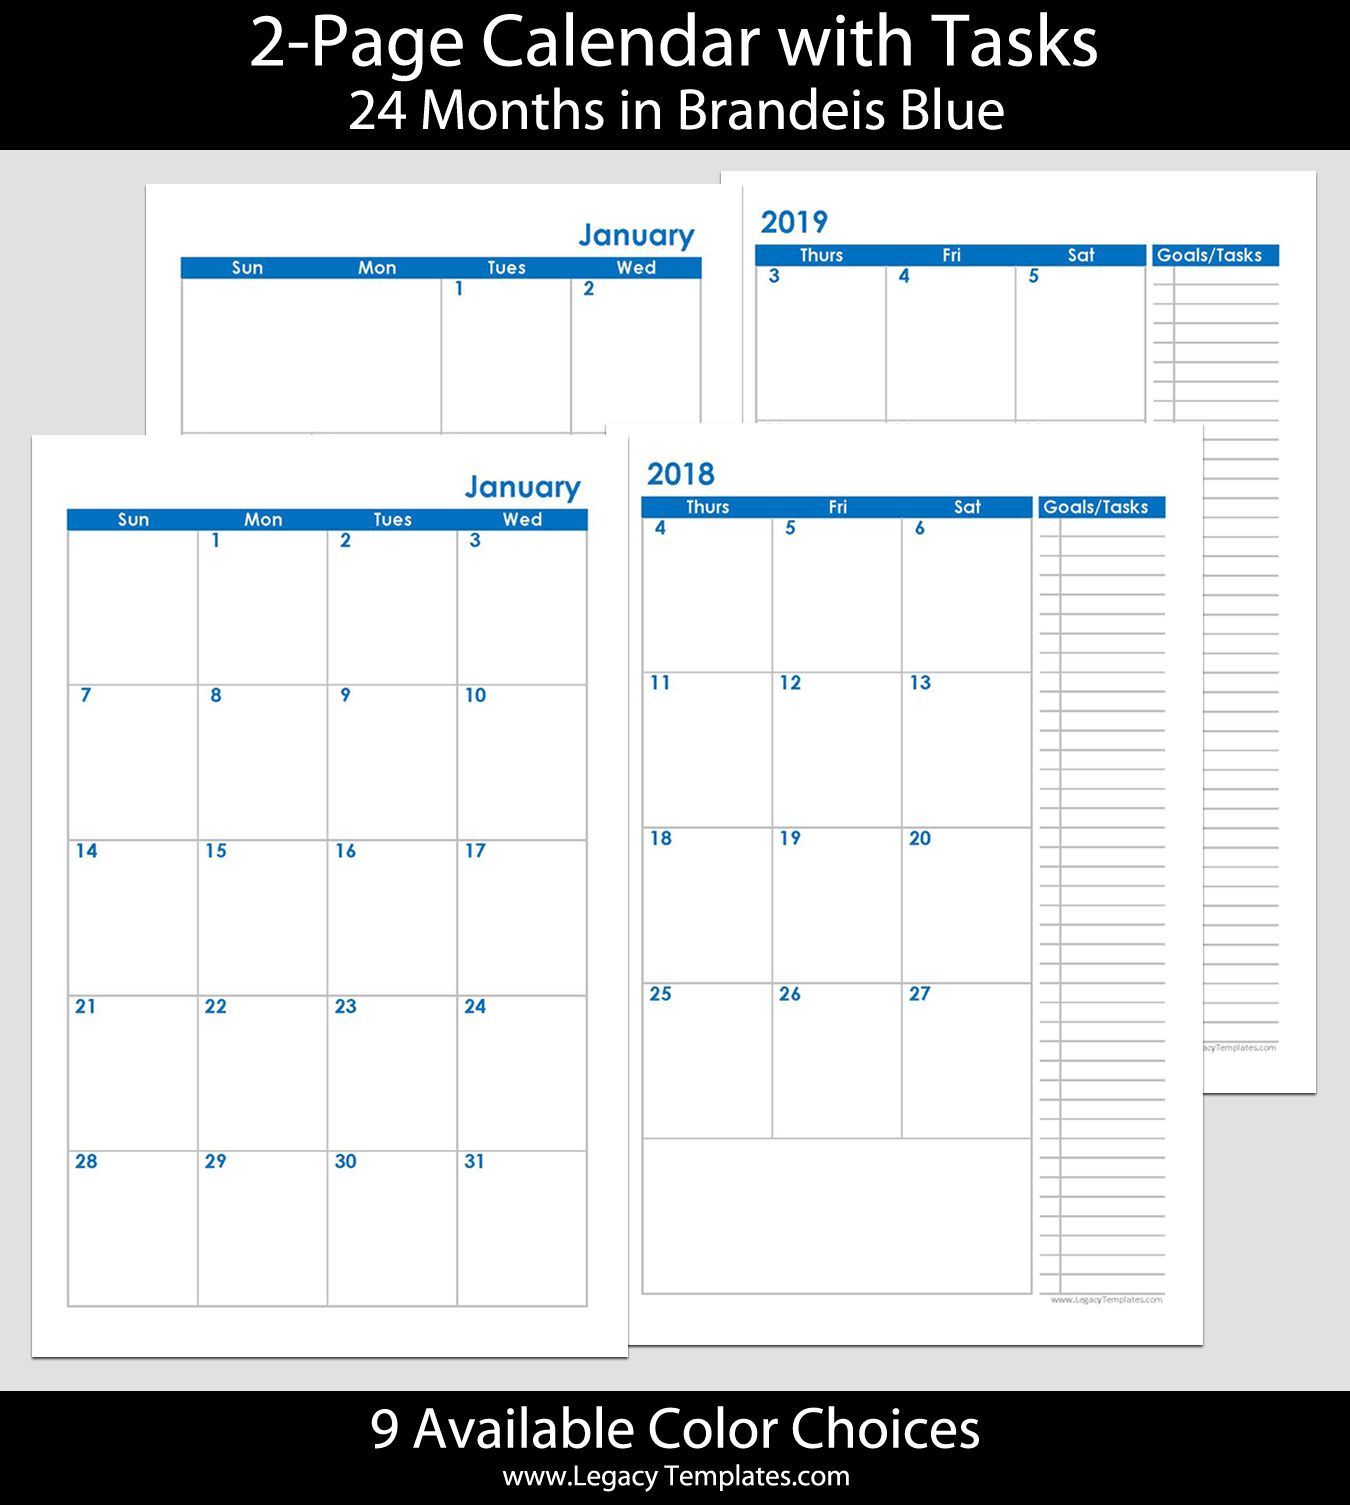 2018 2019 24 Months 2 Page Calendar Printable 2 Page Calendars Available In A Variety Of Colors And Calendar Printables Monthly Calendar Printable Calendar